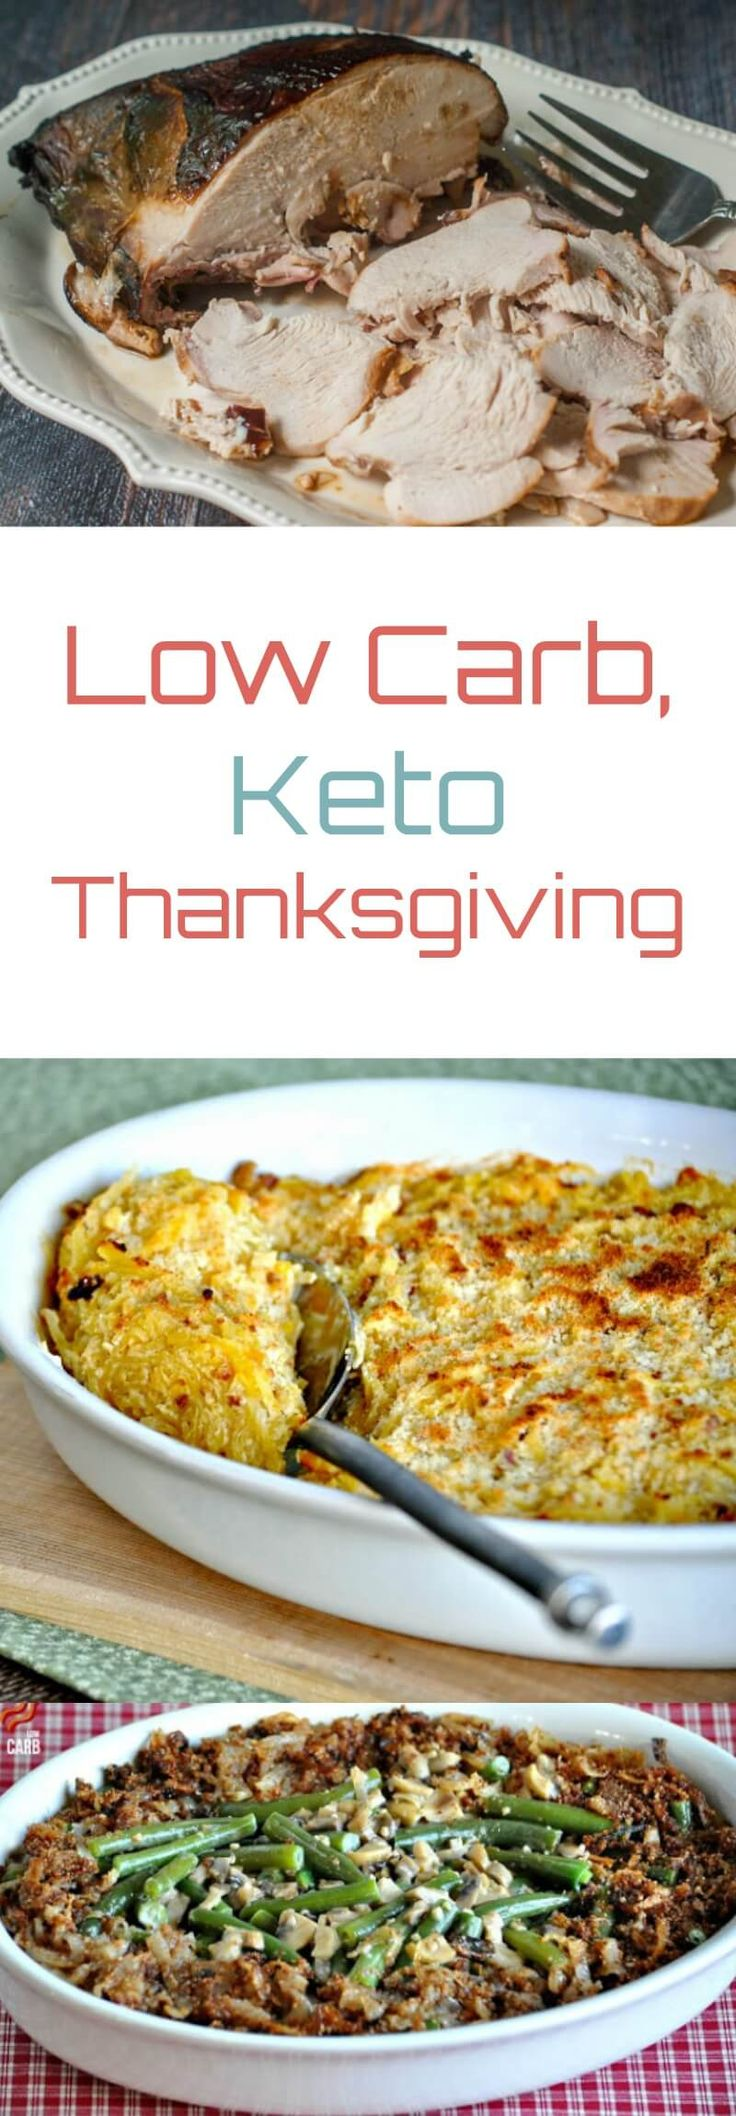 Low Carb Keto Thanksgiving Recipes | Peace Love and Low Carb via @PeaceLoveLoCarb